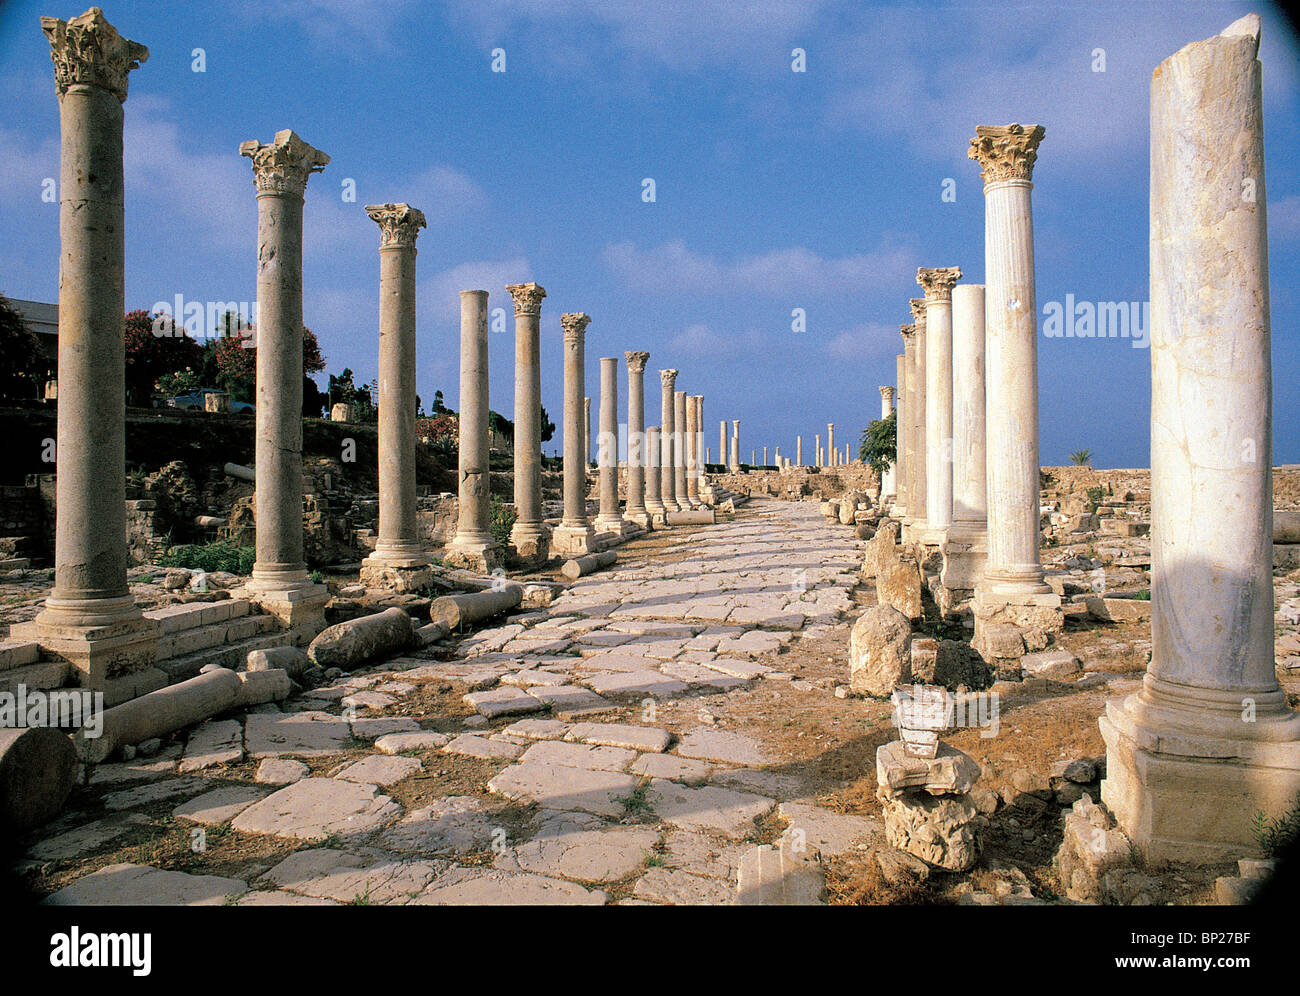 THE COLONADED STREET, ROMAN PERIOD - Stock Image